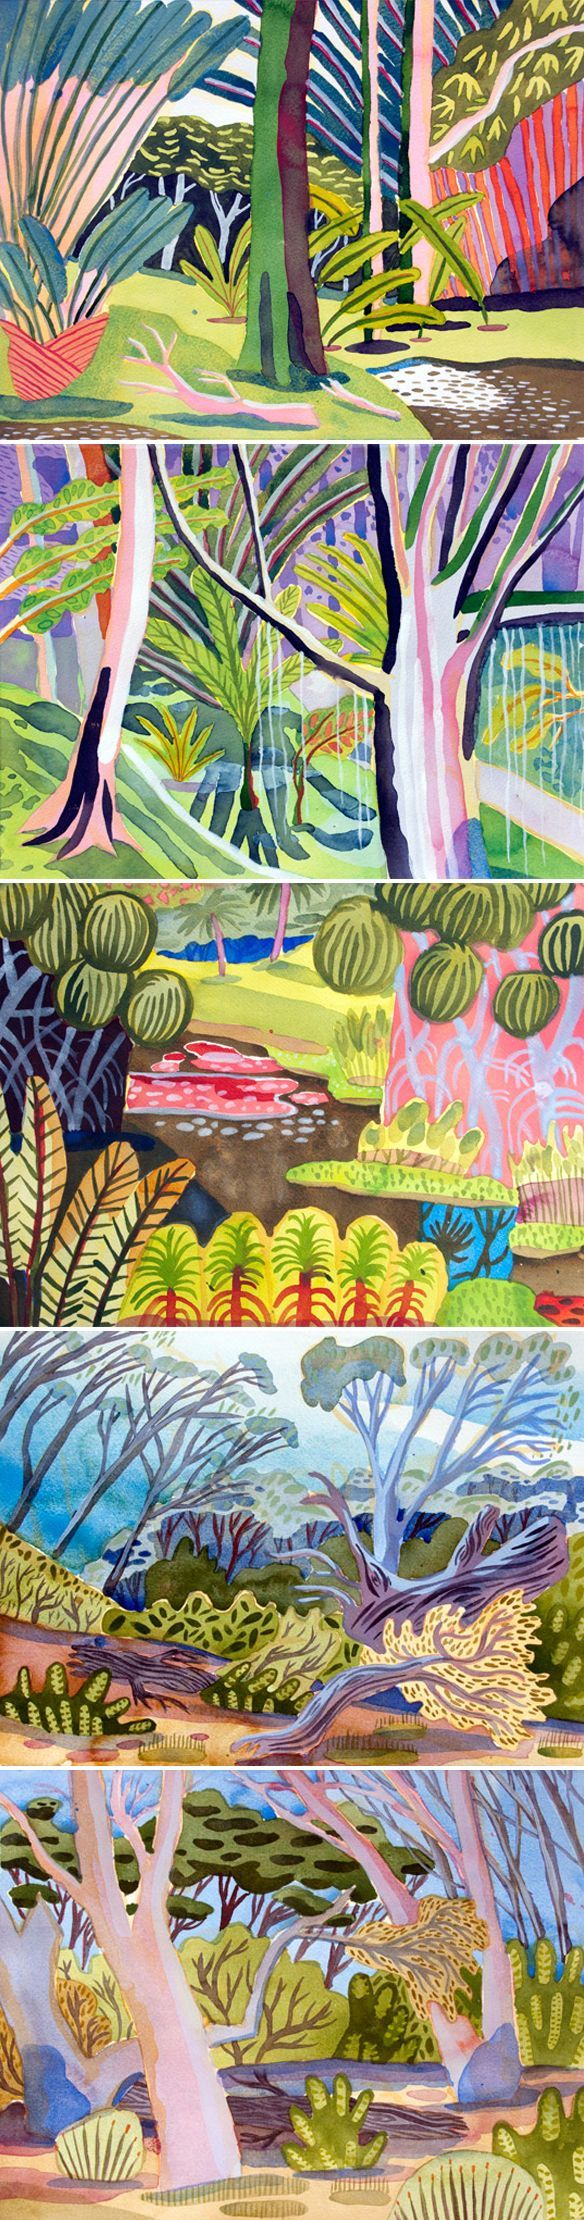 Artist: Jennifer Tyers. Original text: Plein air watercolor paintings. Um, where on earth would you have to live in order for THIS to be the magical candy-hued landscape that you were painting plein air? This is the wonderful watercolor work of Tasmanian born, Borneo based painter Jennifer Tyers… oh, well that explains it! {These are actually pieces she did in Singapore, and Sarawak, but you get the idea!}